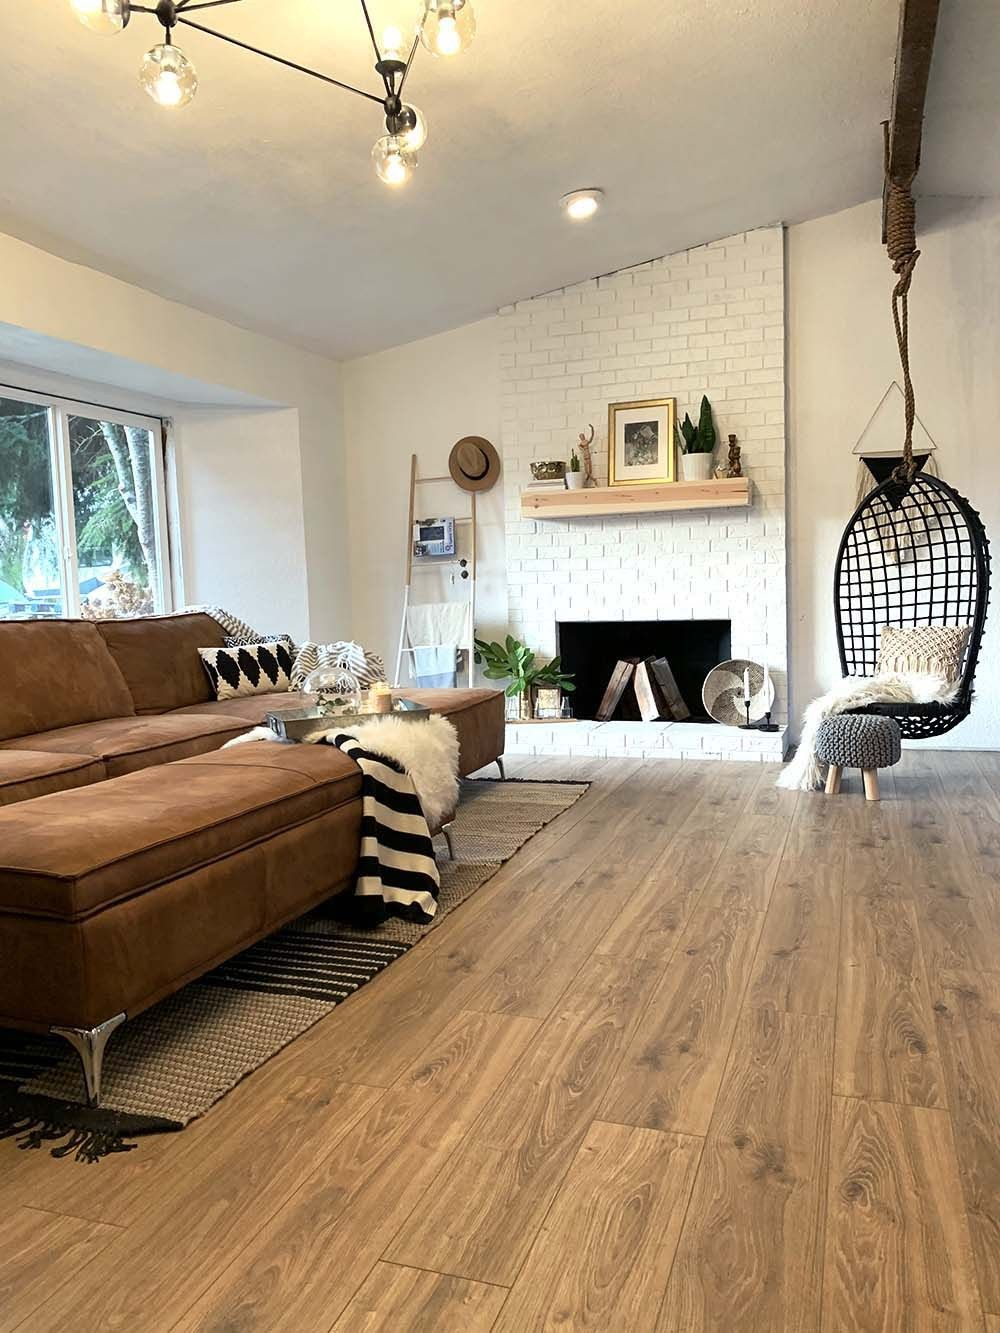 7 Things to Consider When Selecting Hardwood Floors at